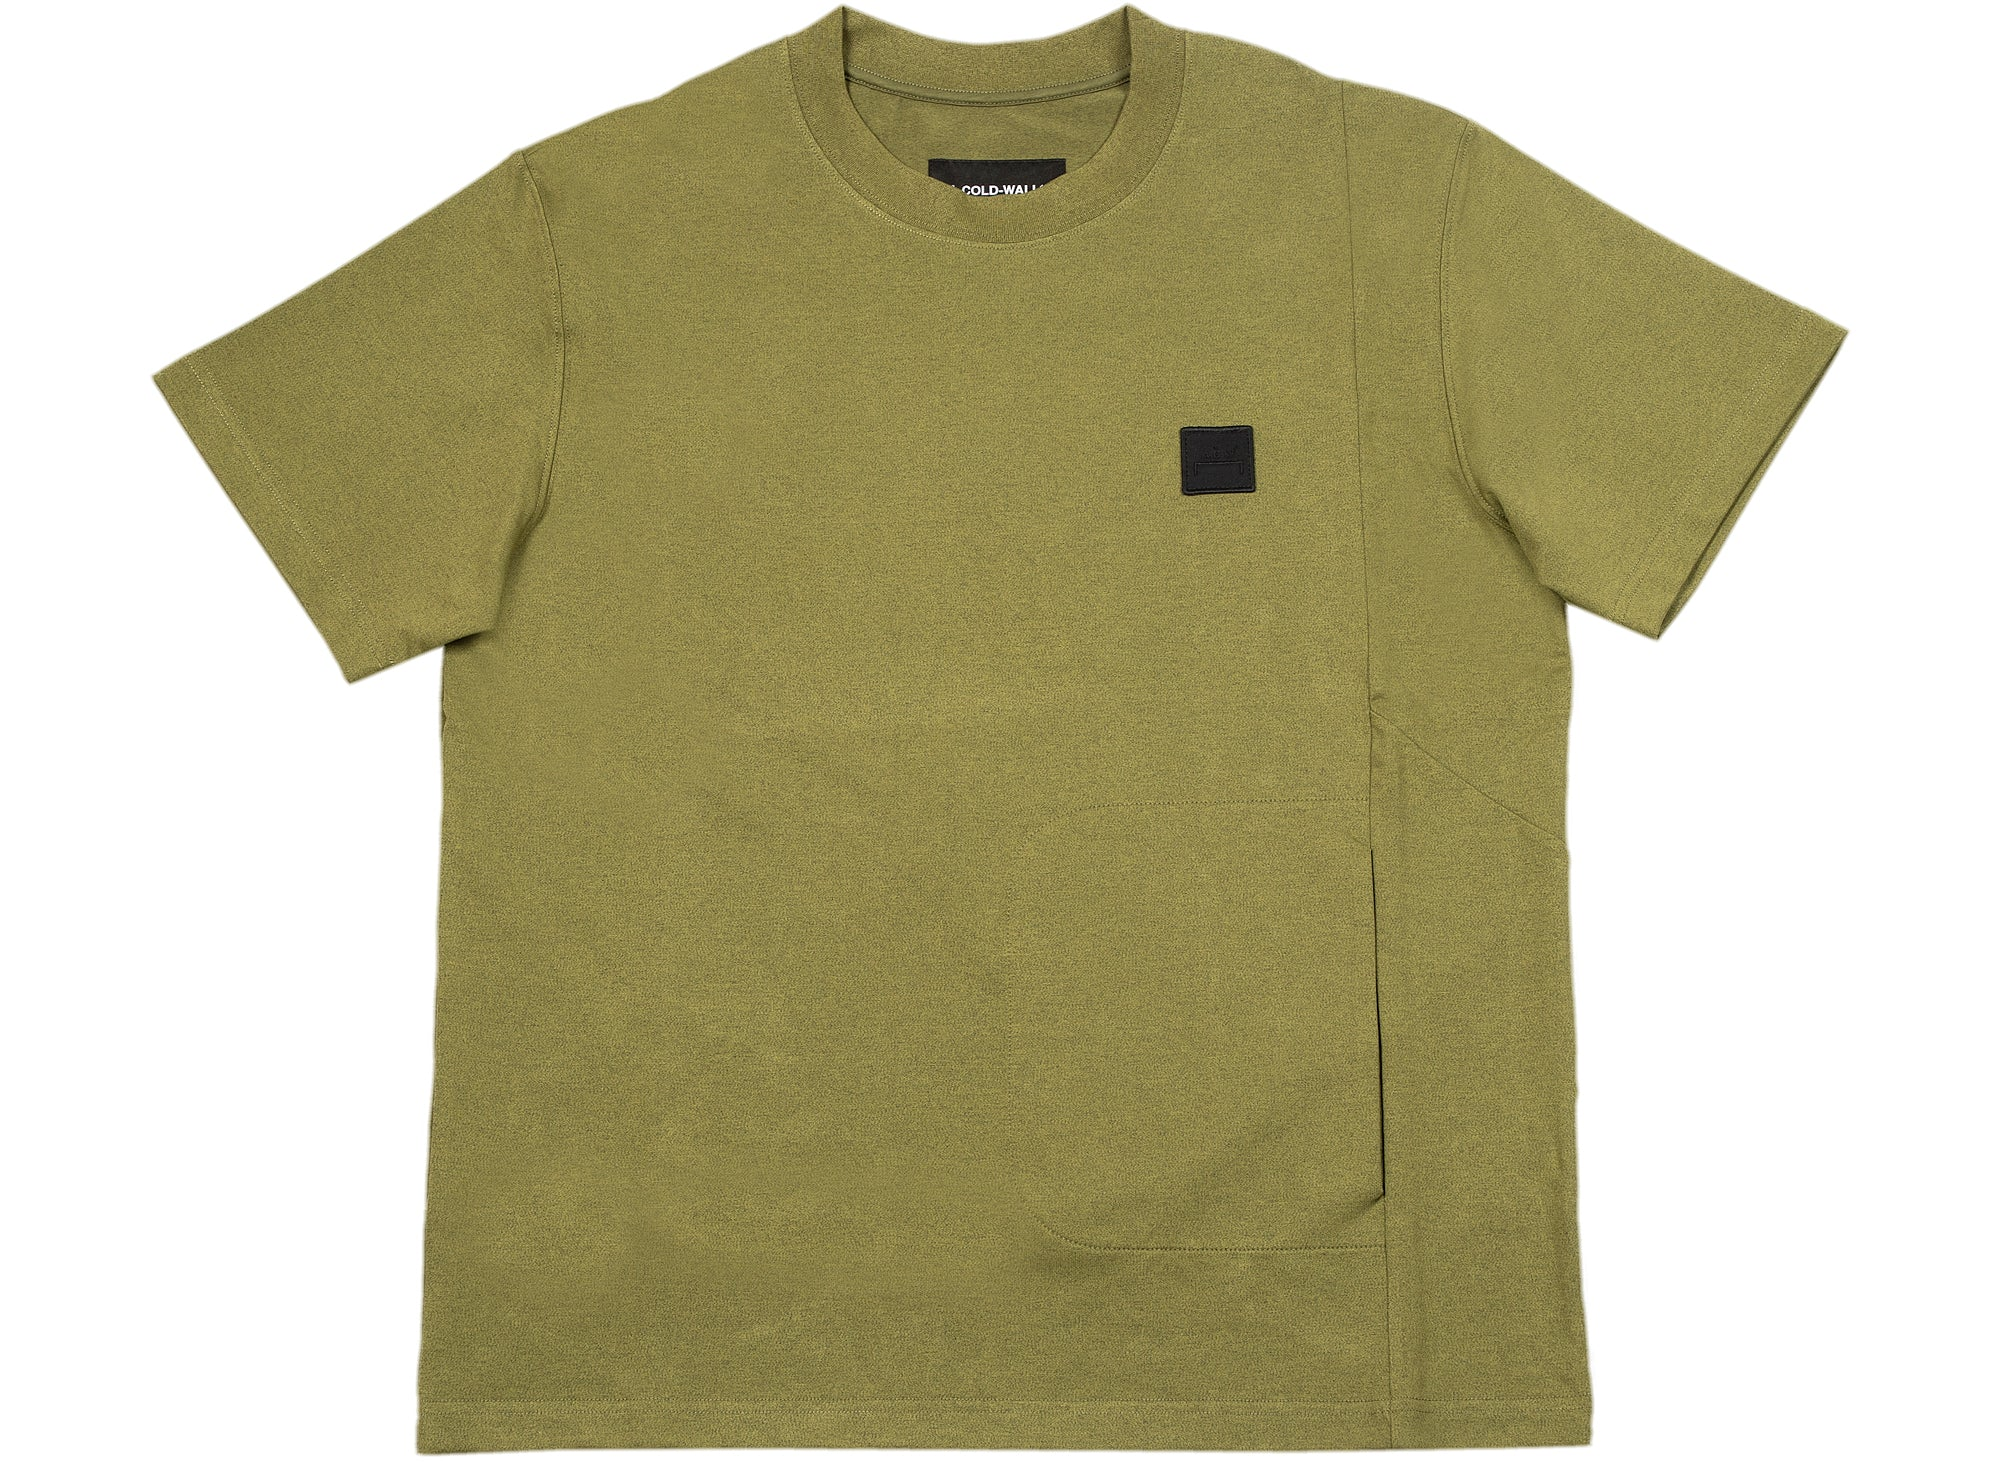 A-COLD-WALL* Utility Short Sleeve Tee in Military Green xld